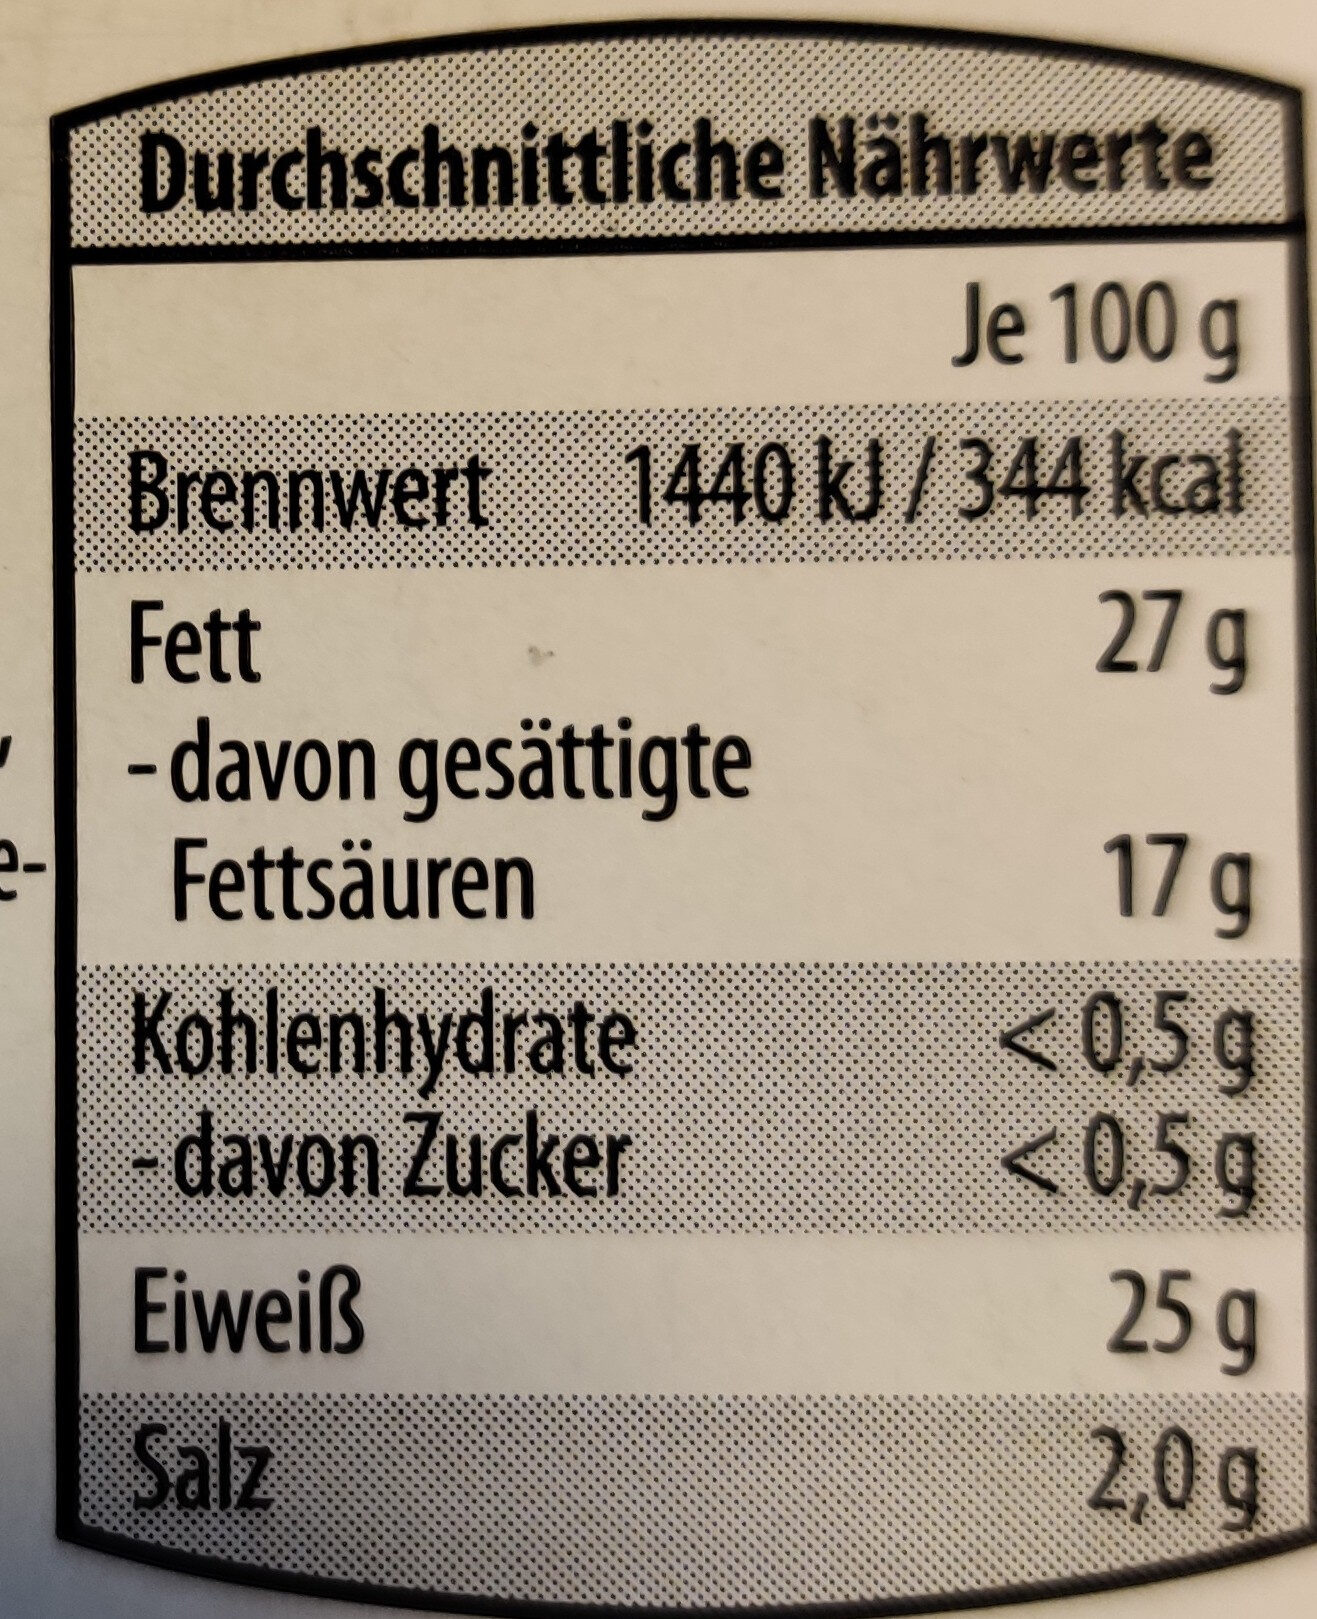 Schweizer Raclettekäse - Nutrition facts